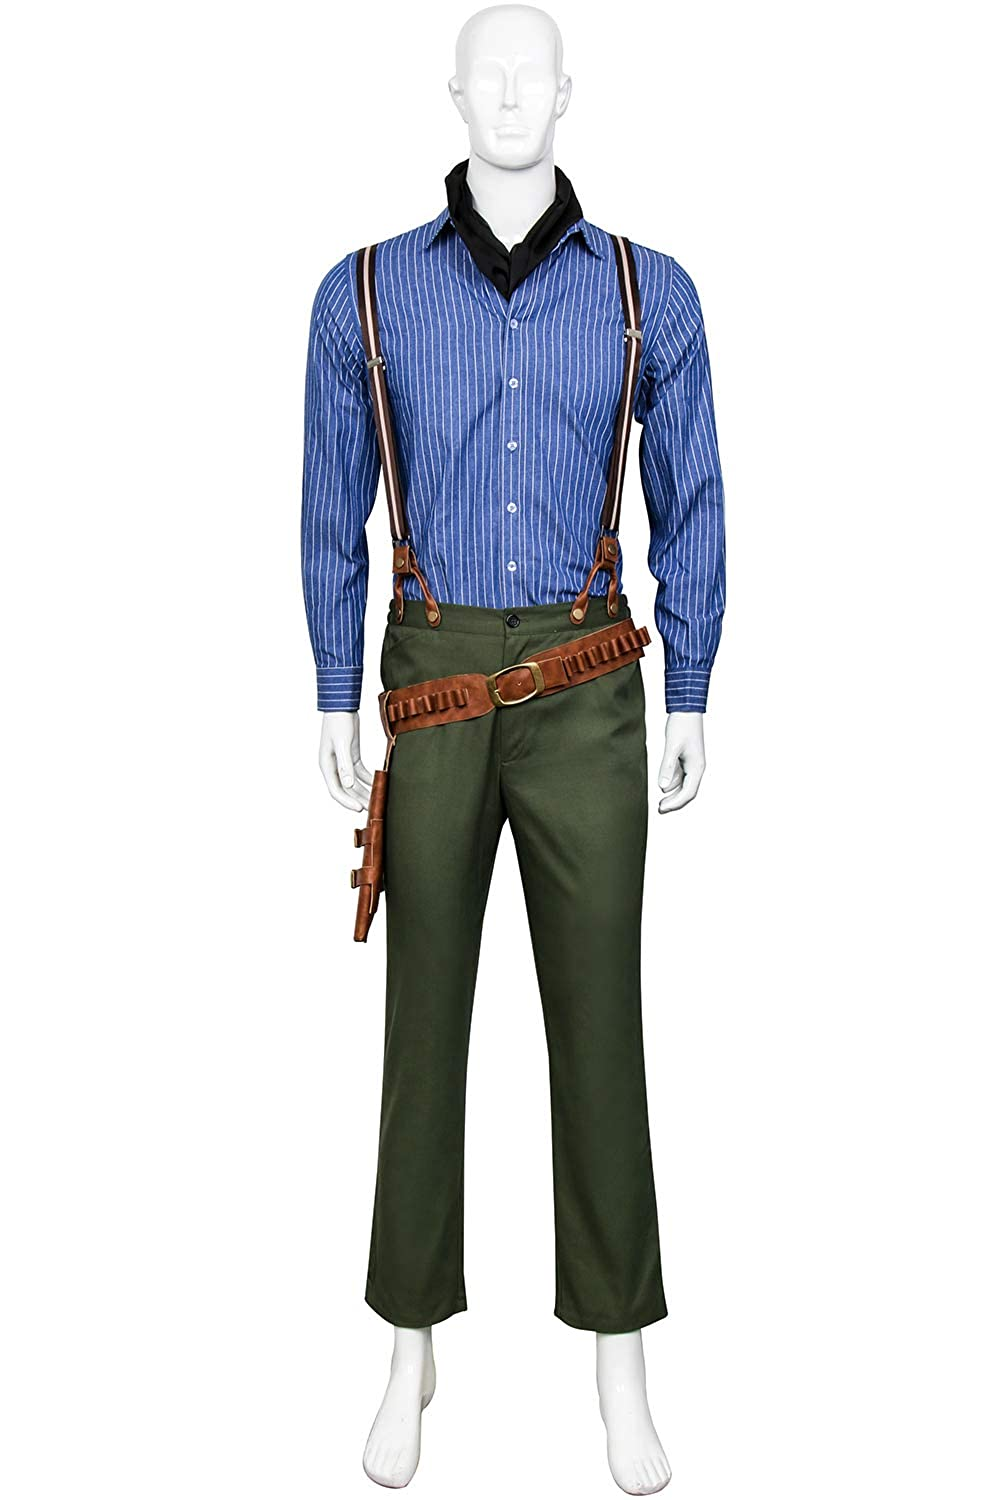 eba9a88c Amazon.com: Partyever Red Dead Arthur Morgan Cosplay Costume Halloween  Overall Uniform Mens Party Cosplay Suits: Clothing